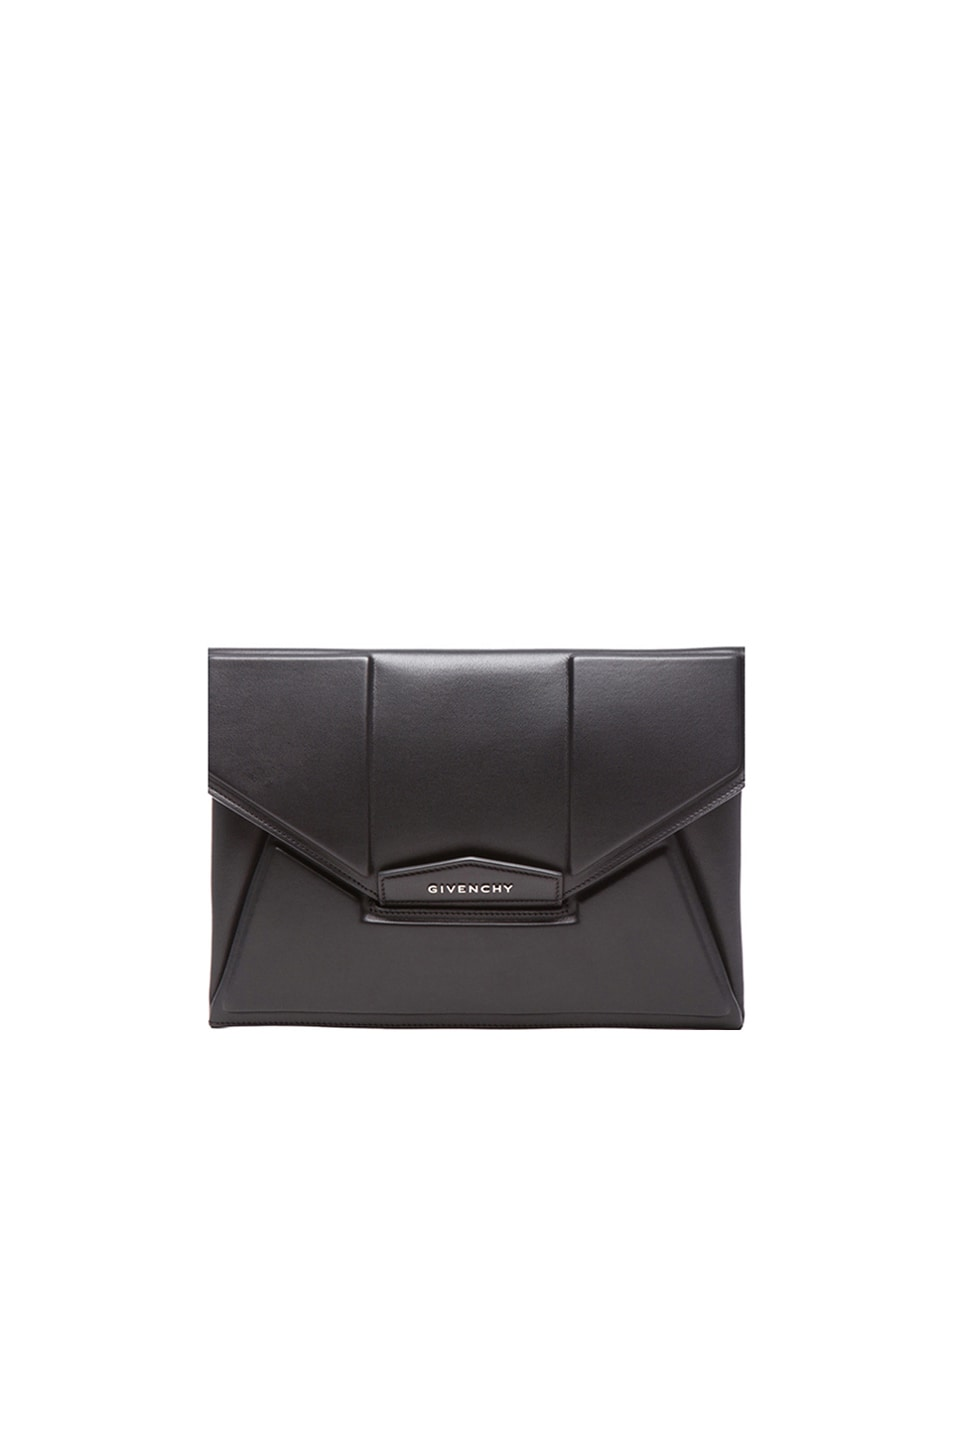 Image 1 of GIVENCHY Medium Antigona Clutch in Debossed Black